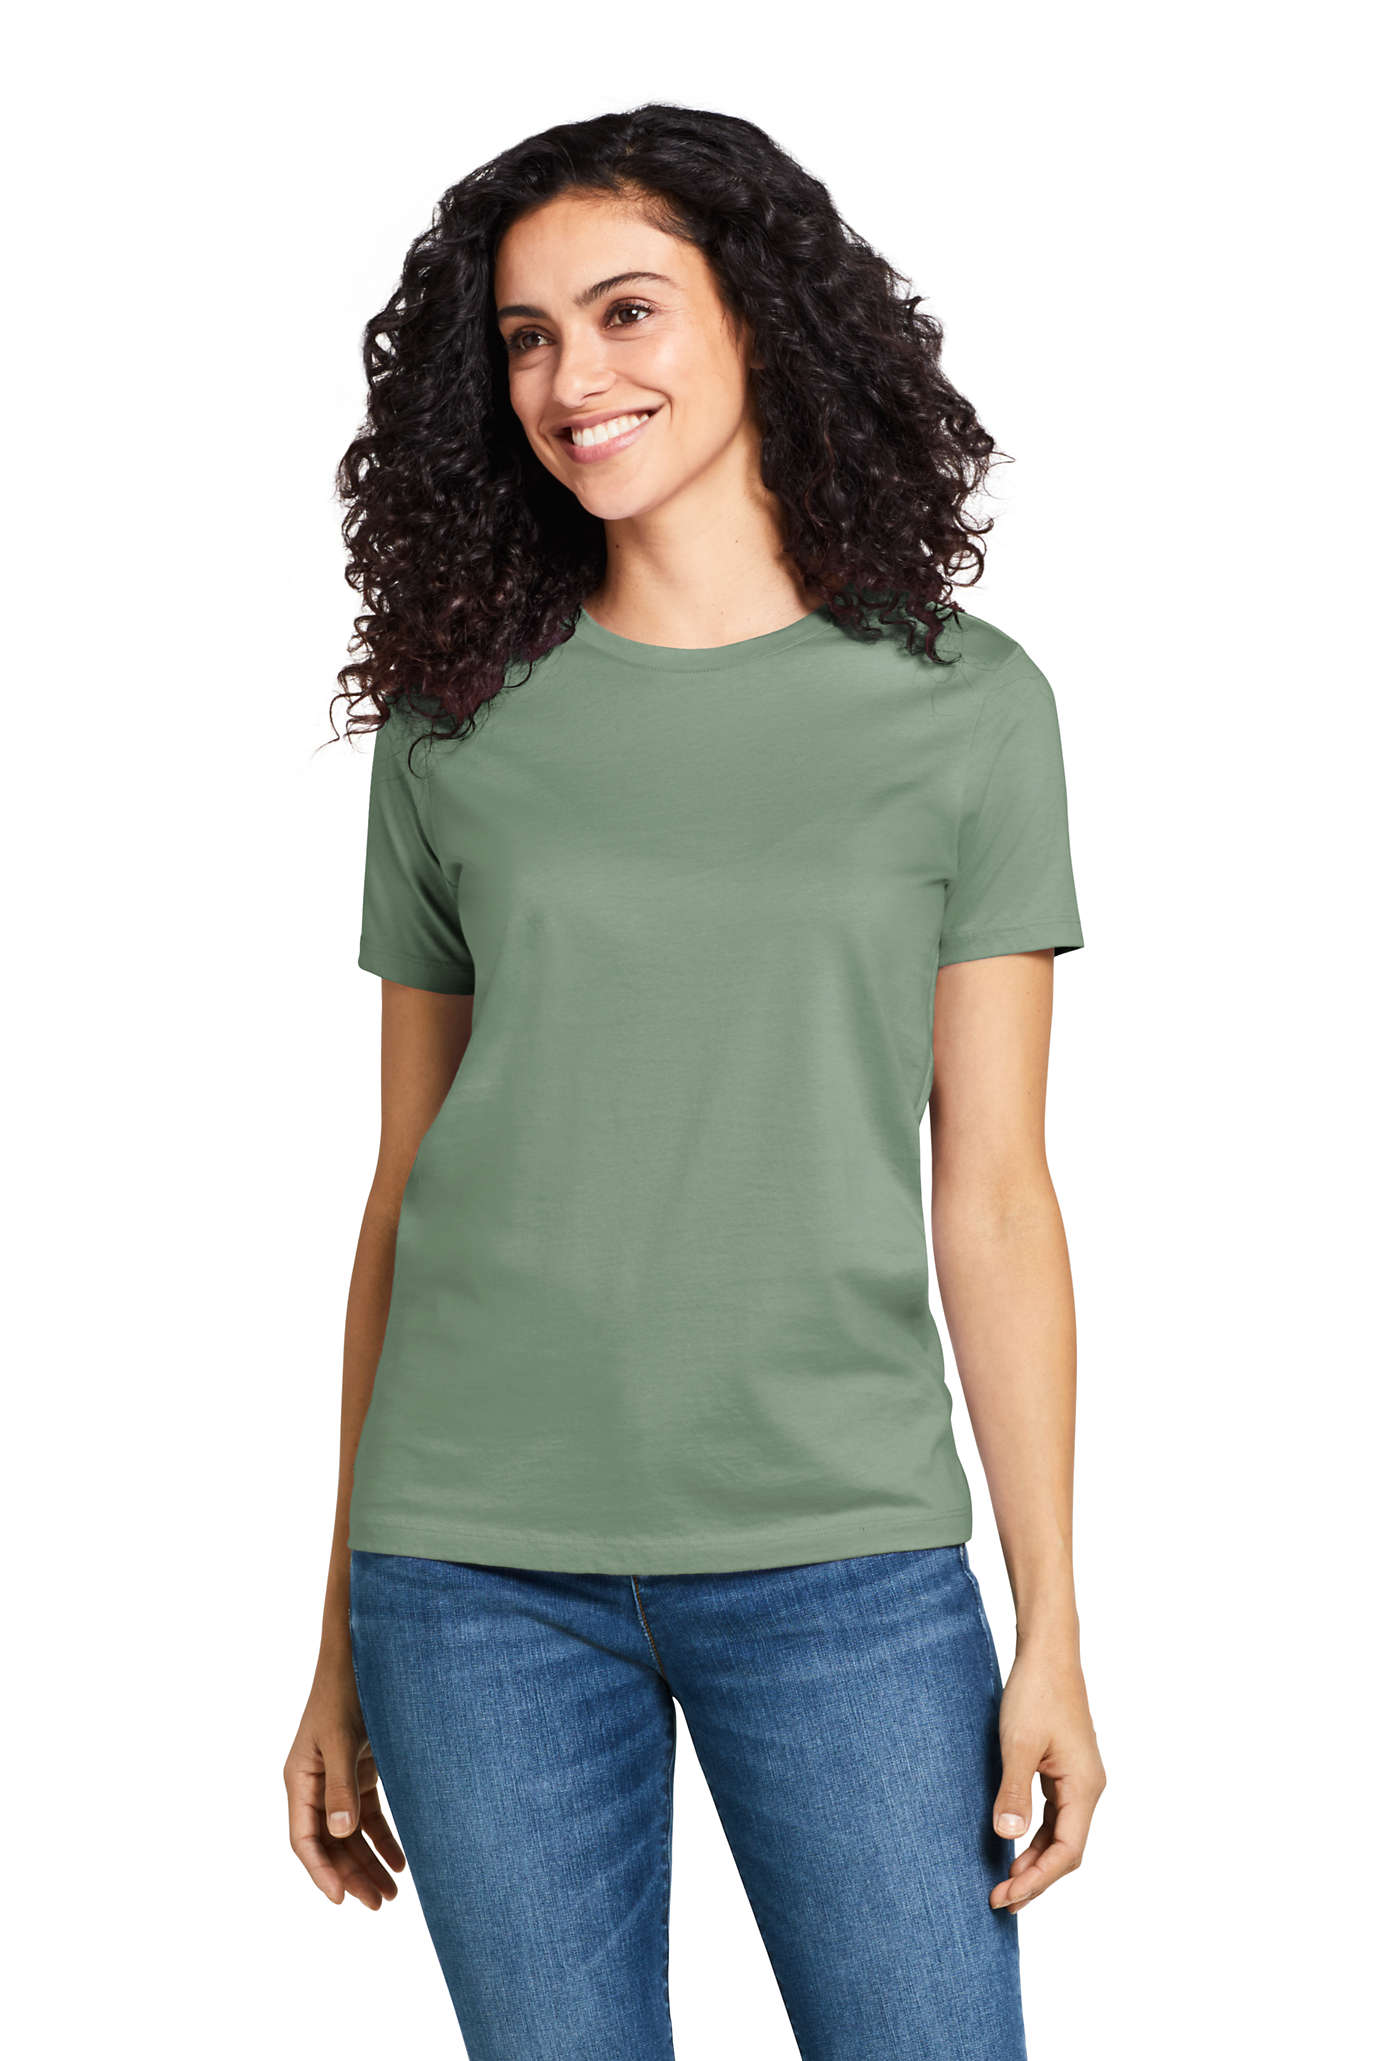 d9b3e03d T Shirts for Women | Lands' End